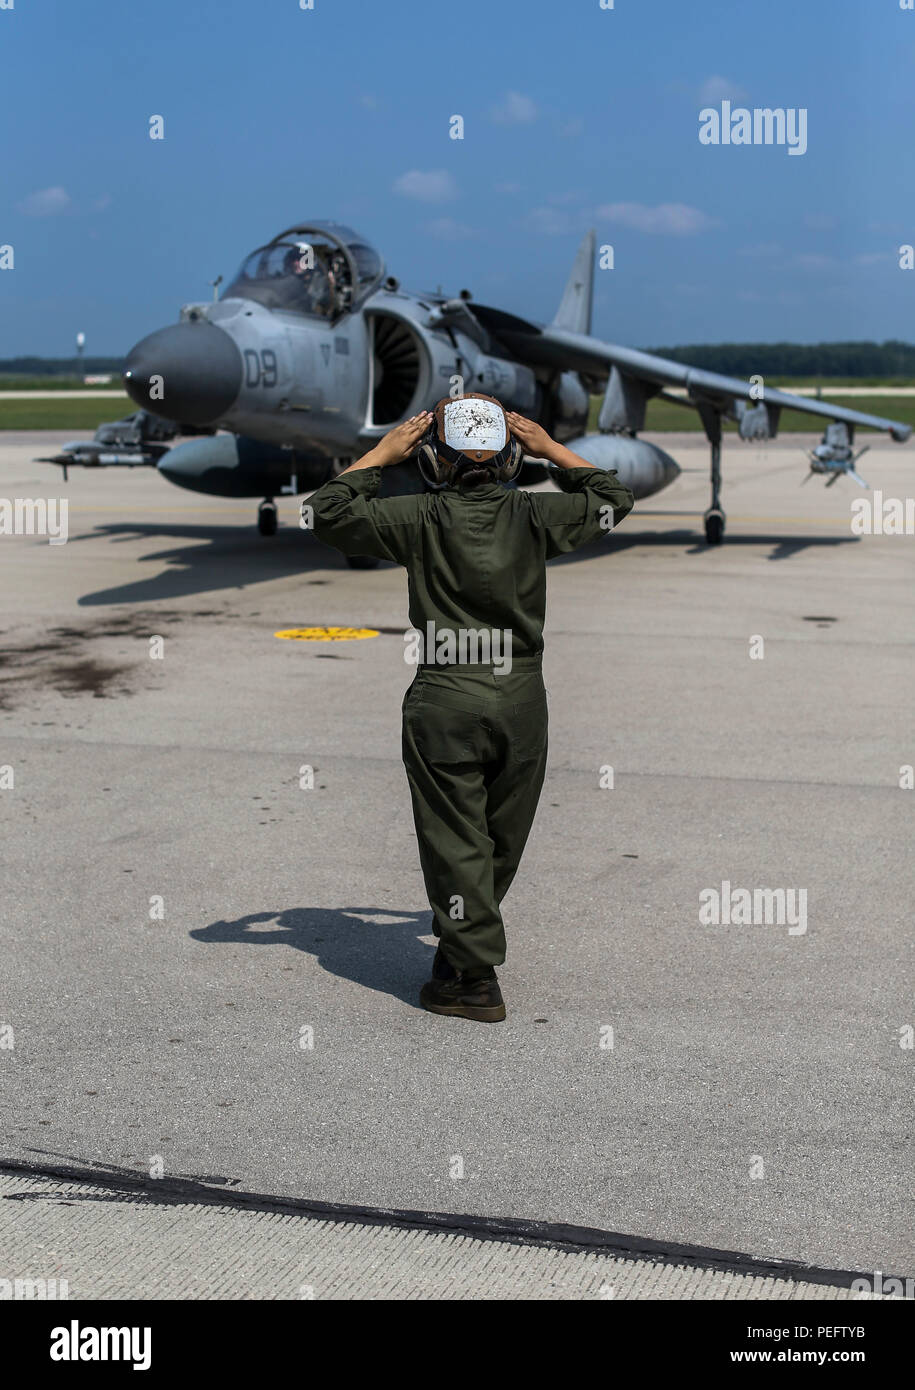 A Marine with Marine Attack Squadron (VMA) 311 directs an AV-8B Harrier II during Exercise Northern Lightning at Volk Field Counterland Training Center, Camp Douglas, Wis. Aug. 13. Exercise Northern Lightning 2018 allows the Air Force, Marine Corps and Navy to strengthen interoperability between services and gives the different branches a greater understanding of aviation capabilities within a joint fighting force. (U.S. Marine Corps photo by Sgt. David Bickel) Stock Photo